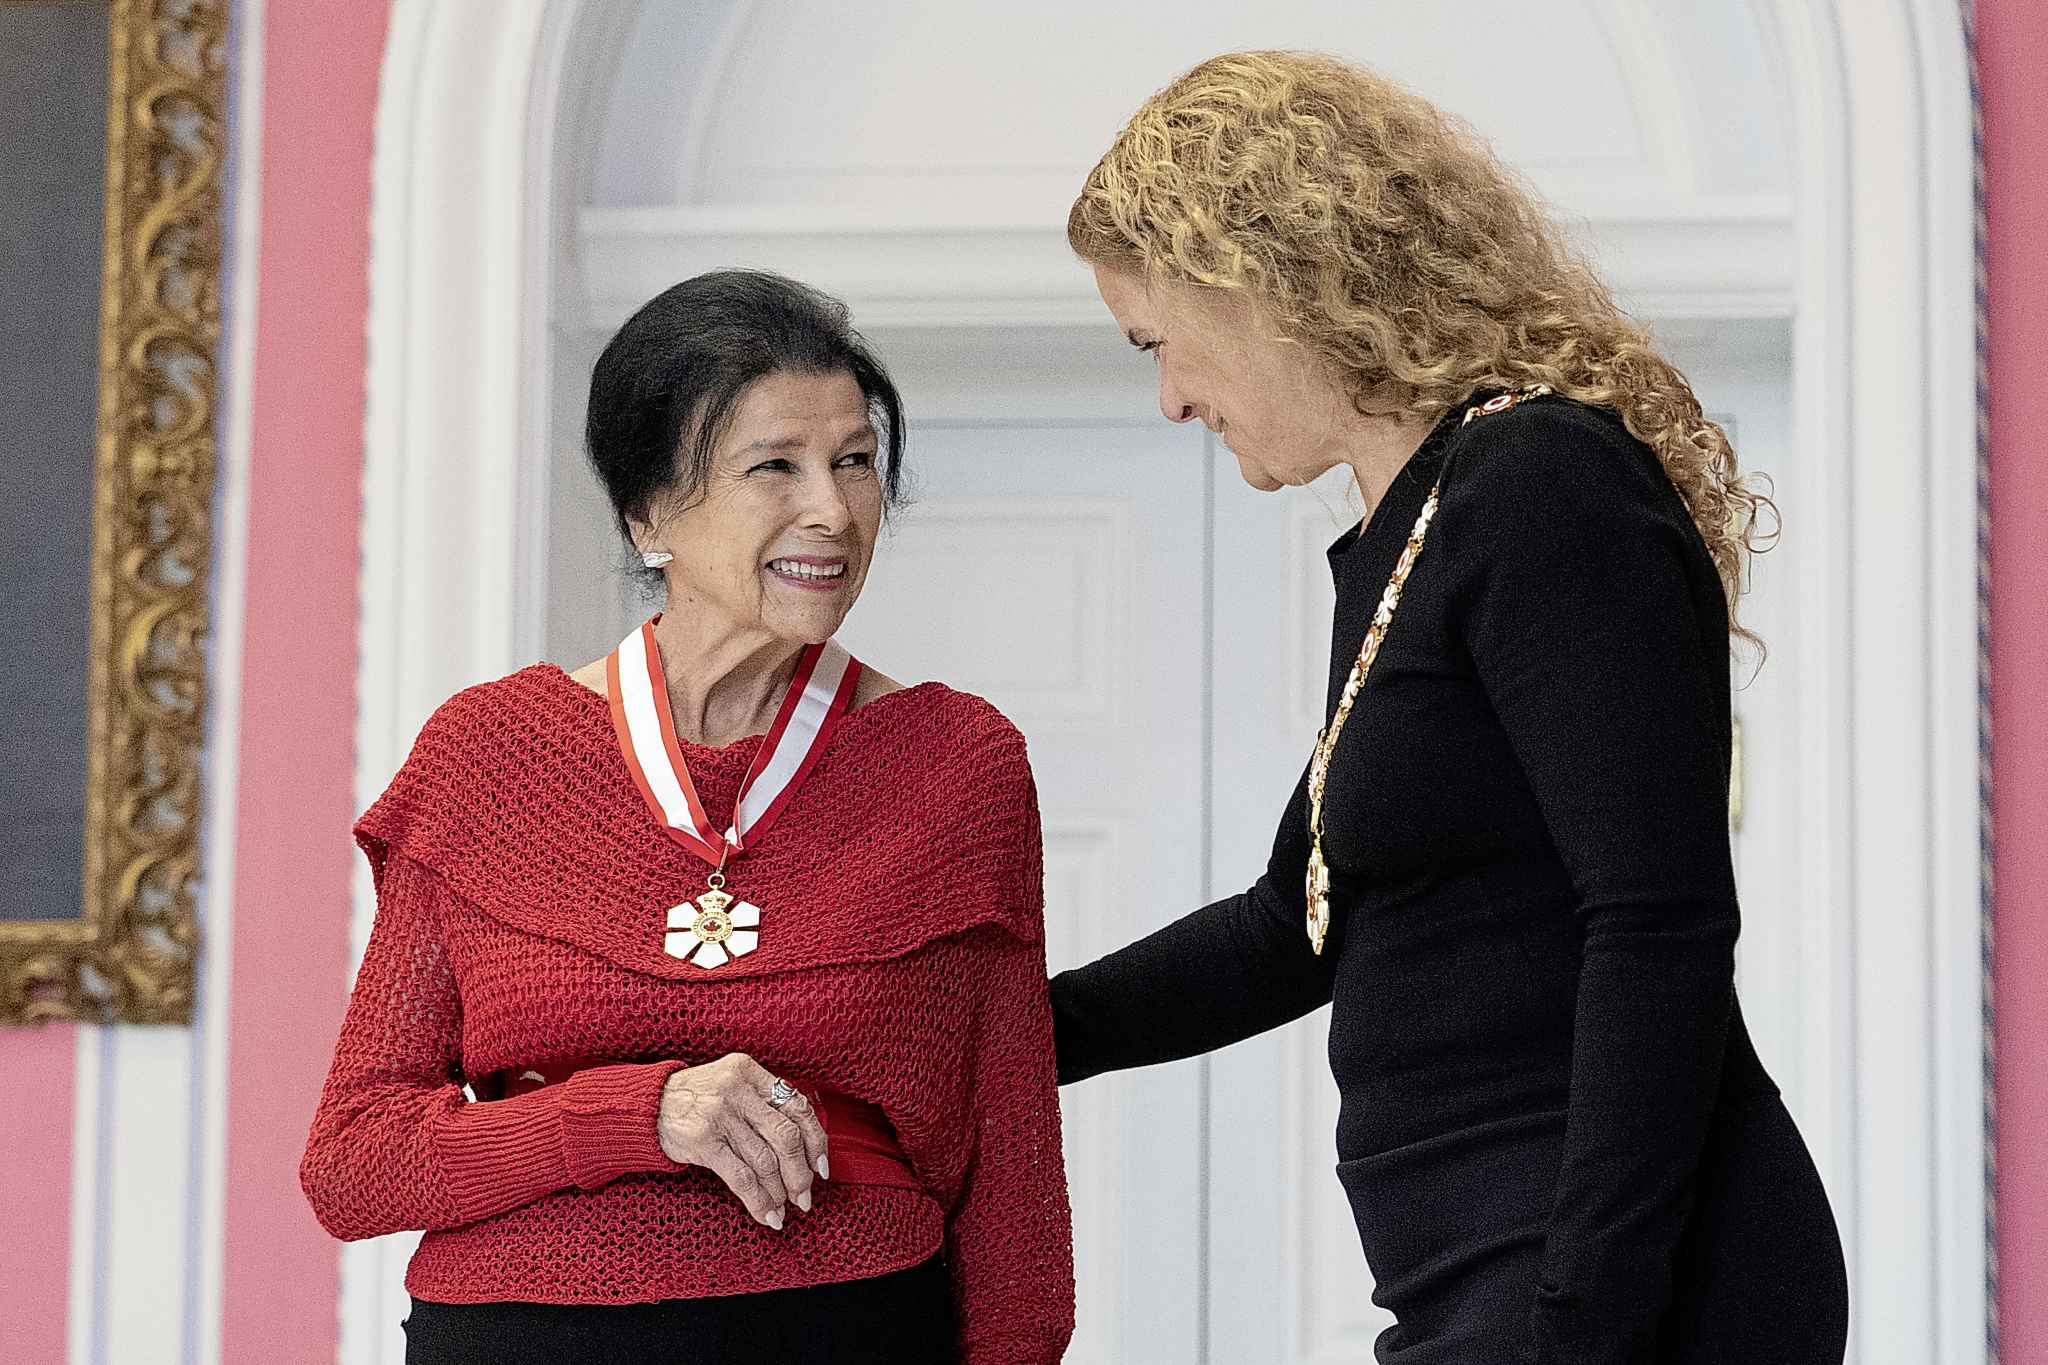 Alanis Obomsawin, of Montreal, Que., is invested as a Companion of the Order of Canada by Governor General Julie Payette. THE CANADIAN PRESS/Chris Wattie